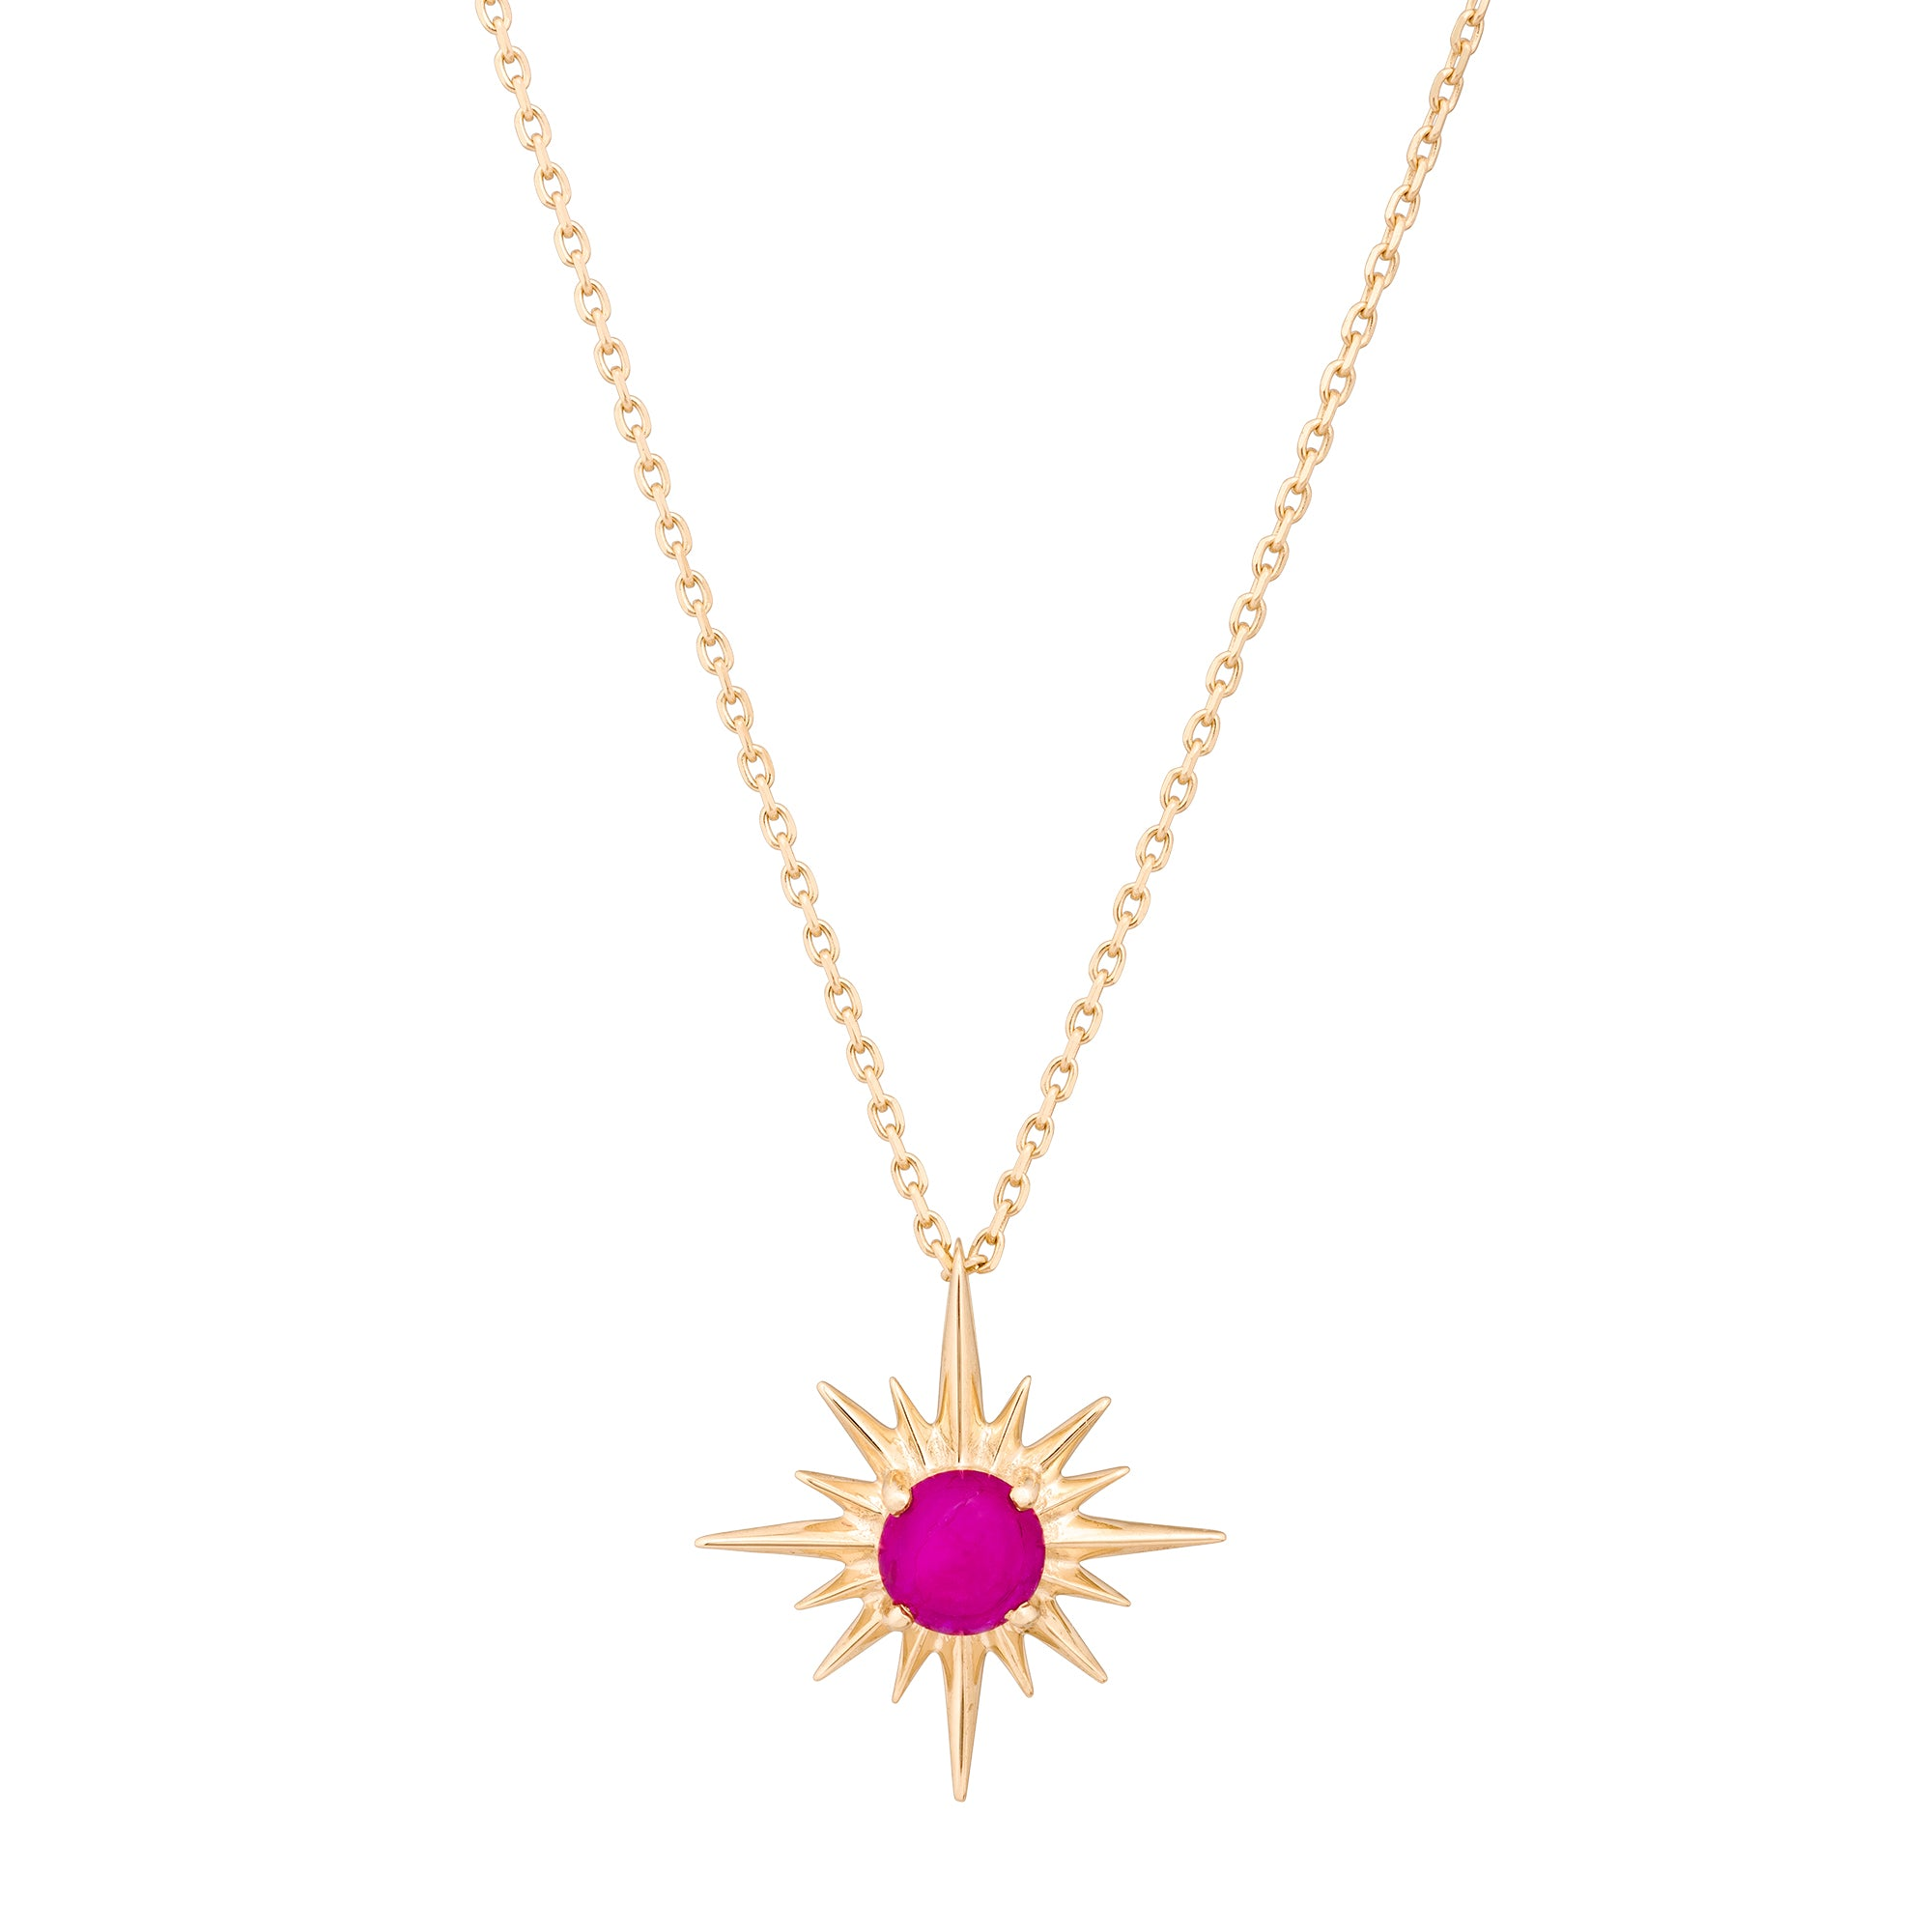 Gold & Ruby Star Necklace by Celine Doust for Broken English Jewelry